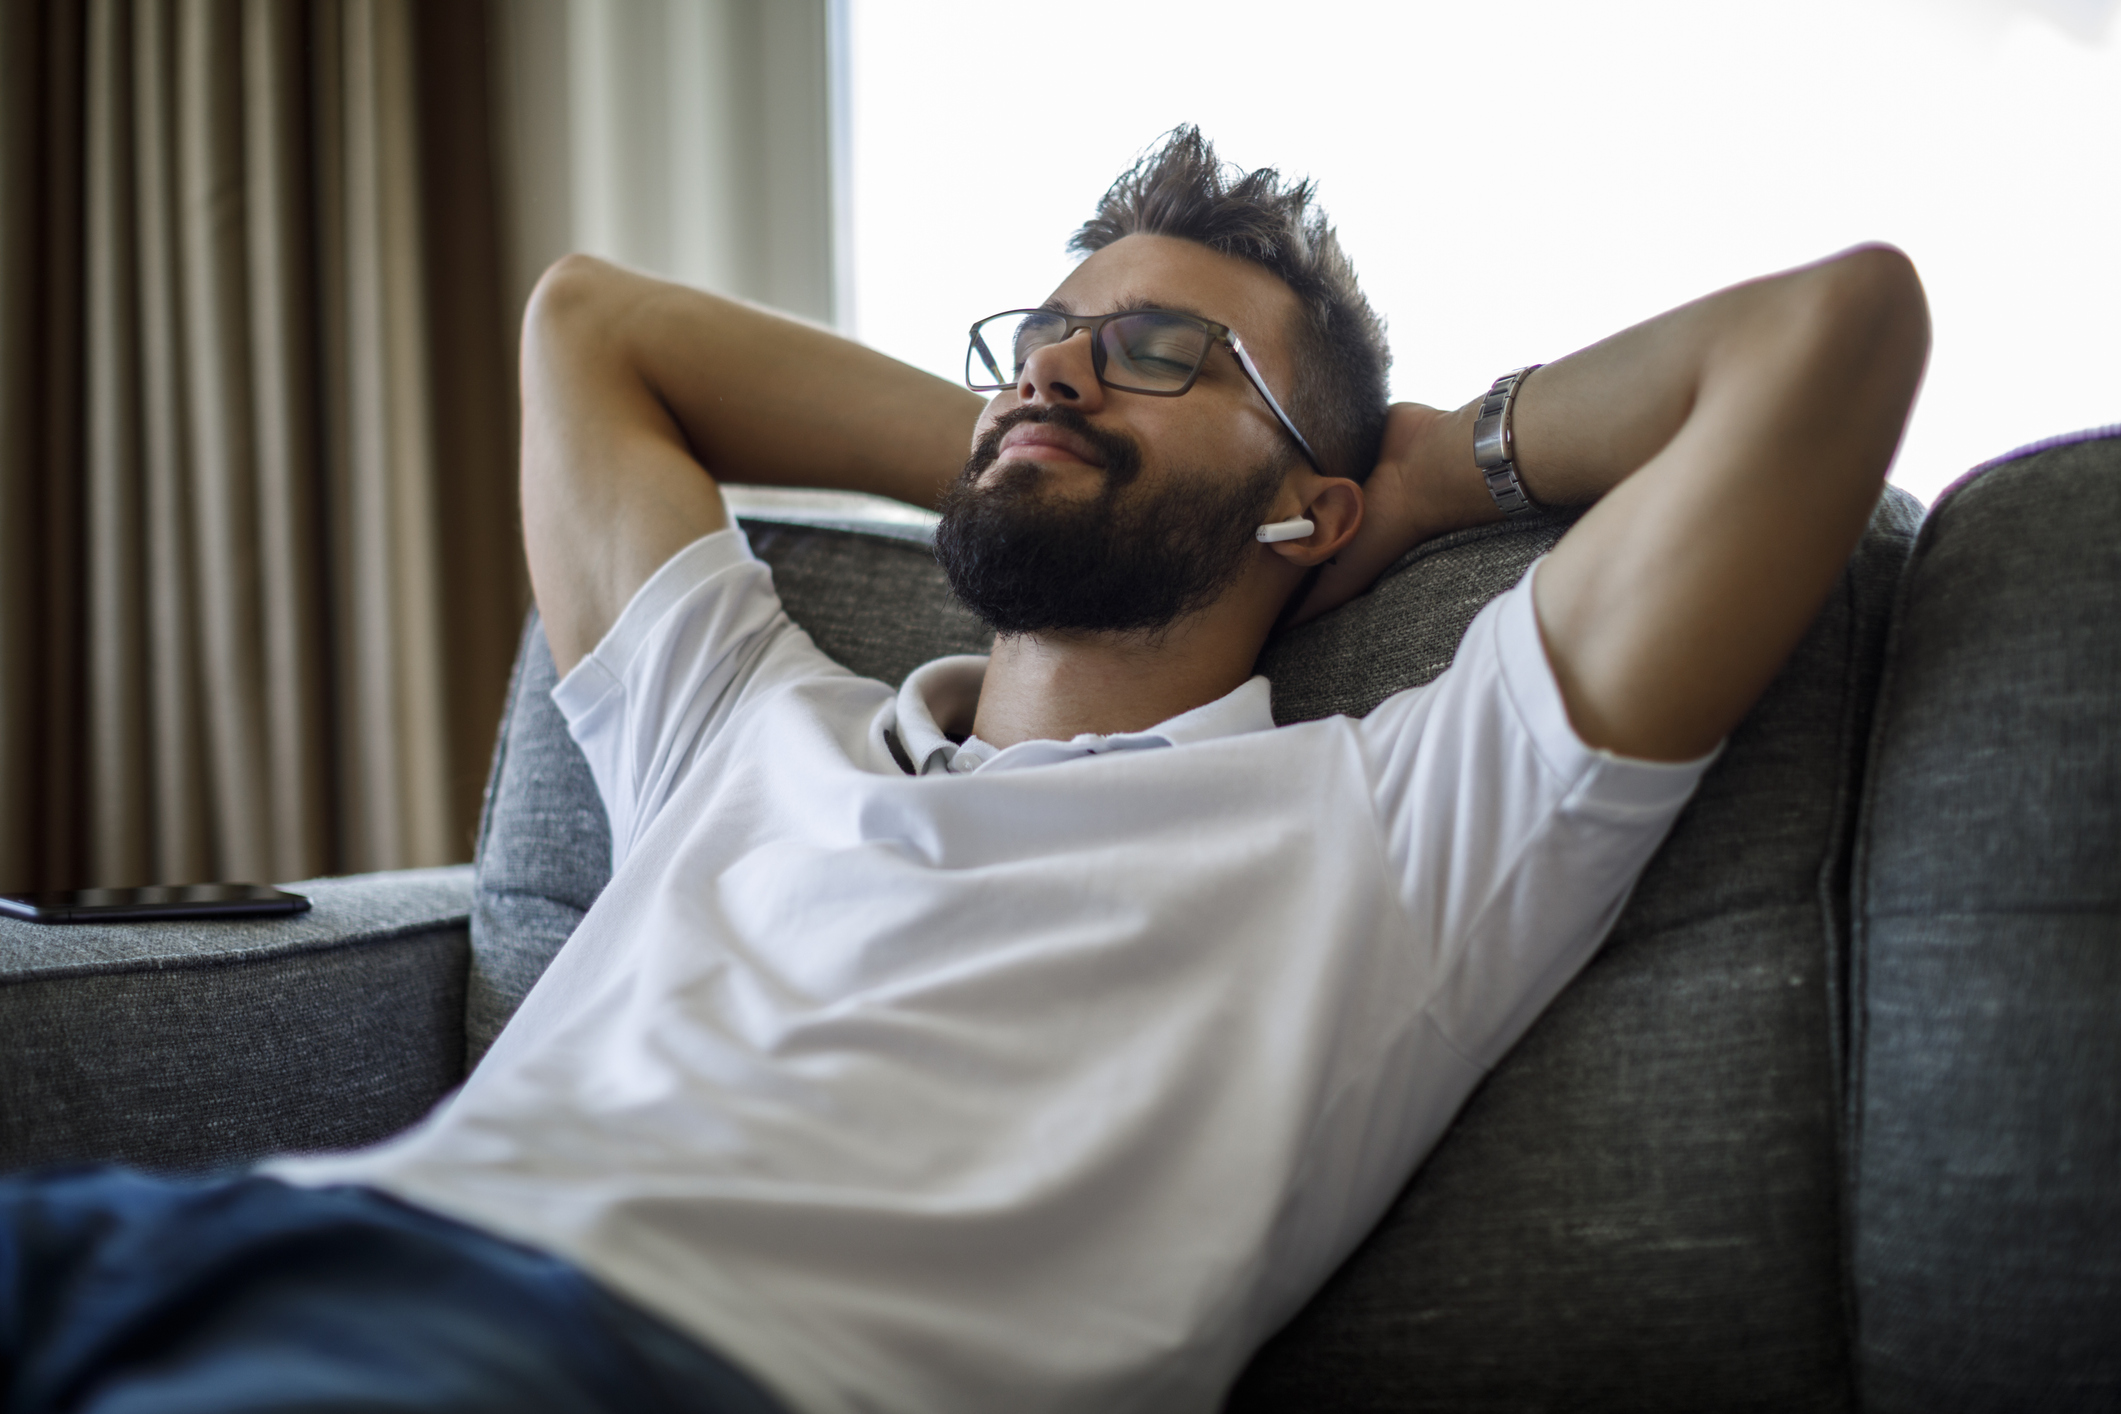 Man relaxing on couch listening to music